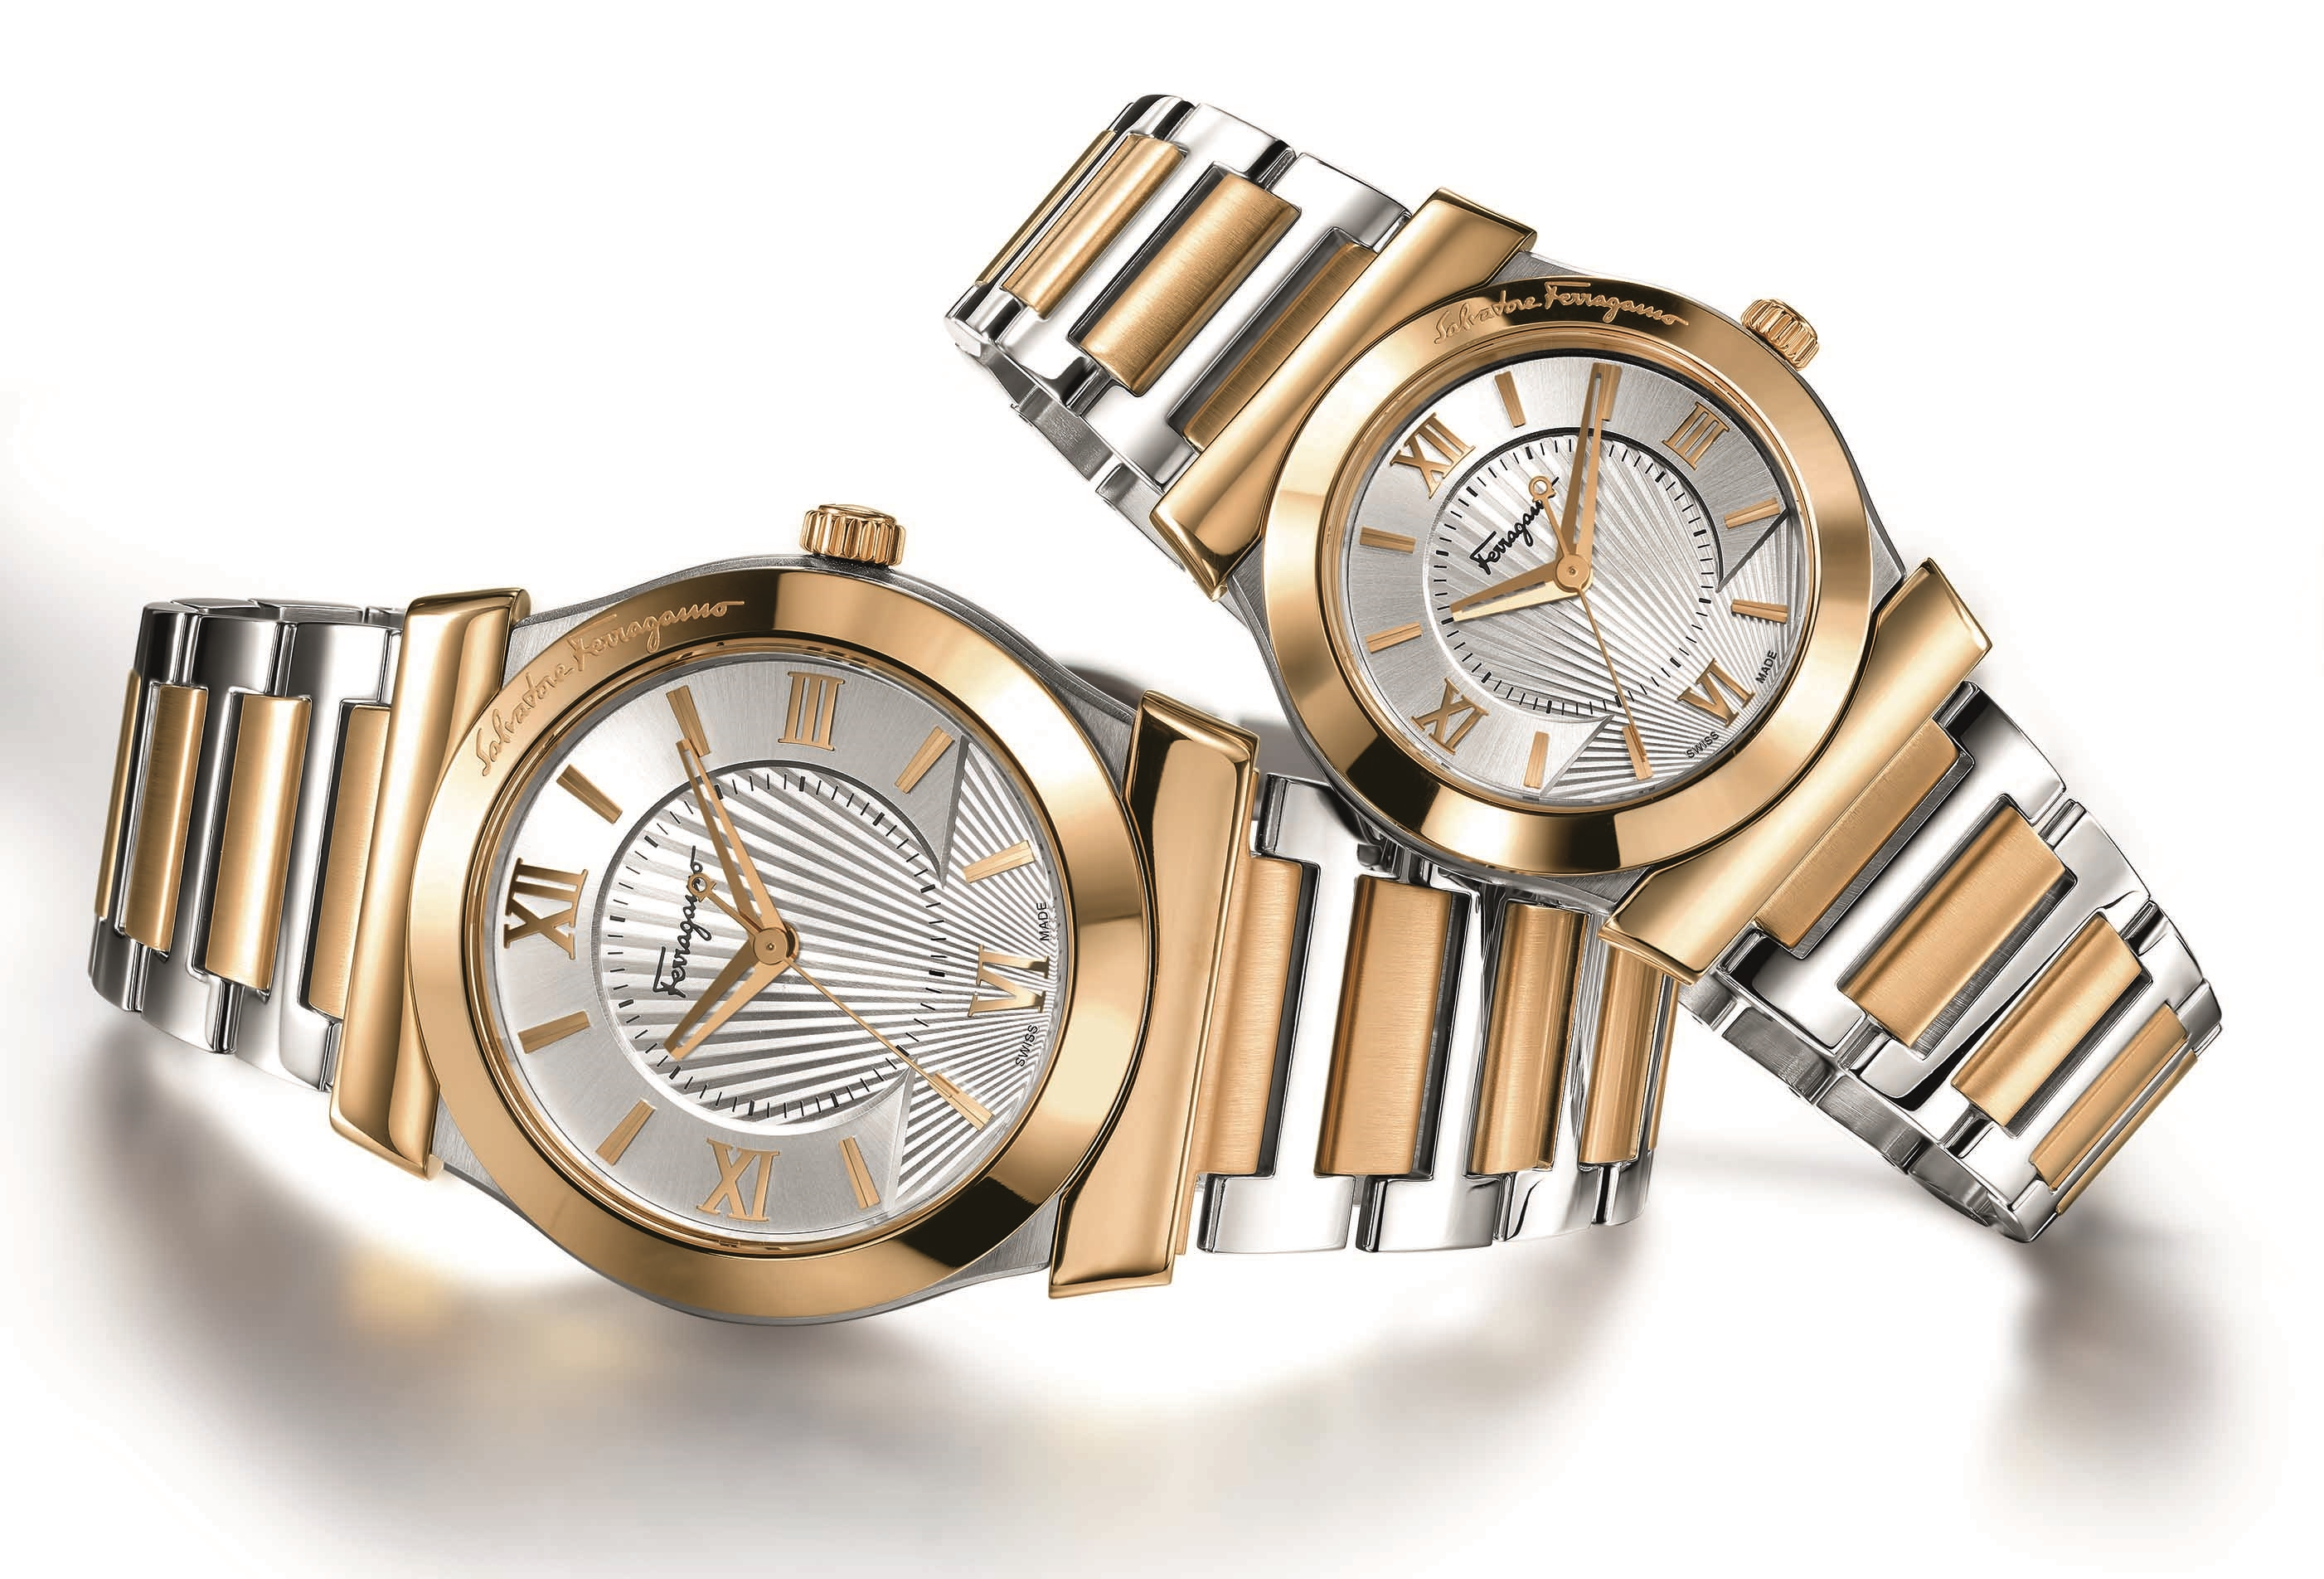 Ferragamo Vega Two-Tone Watches